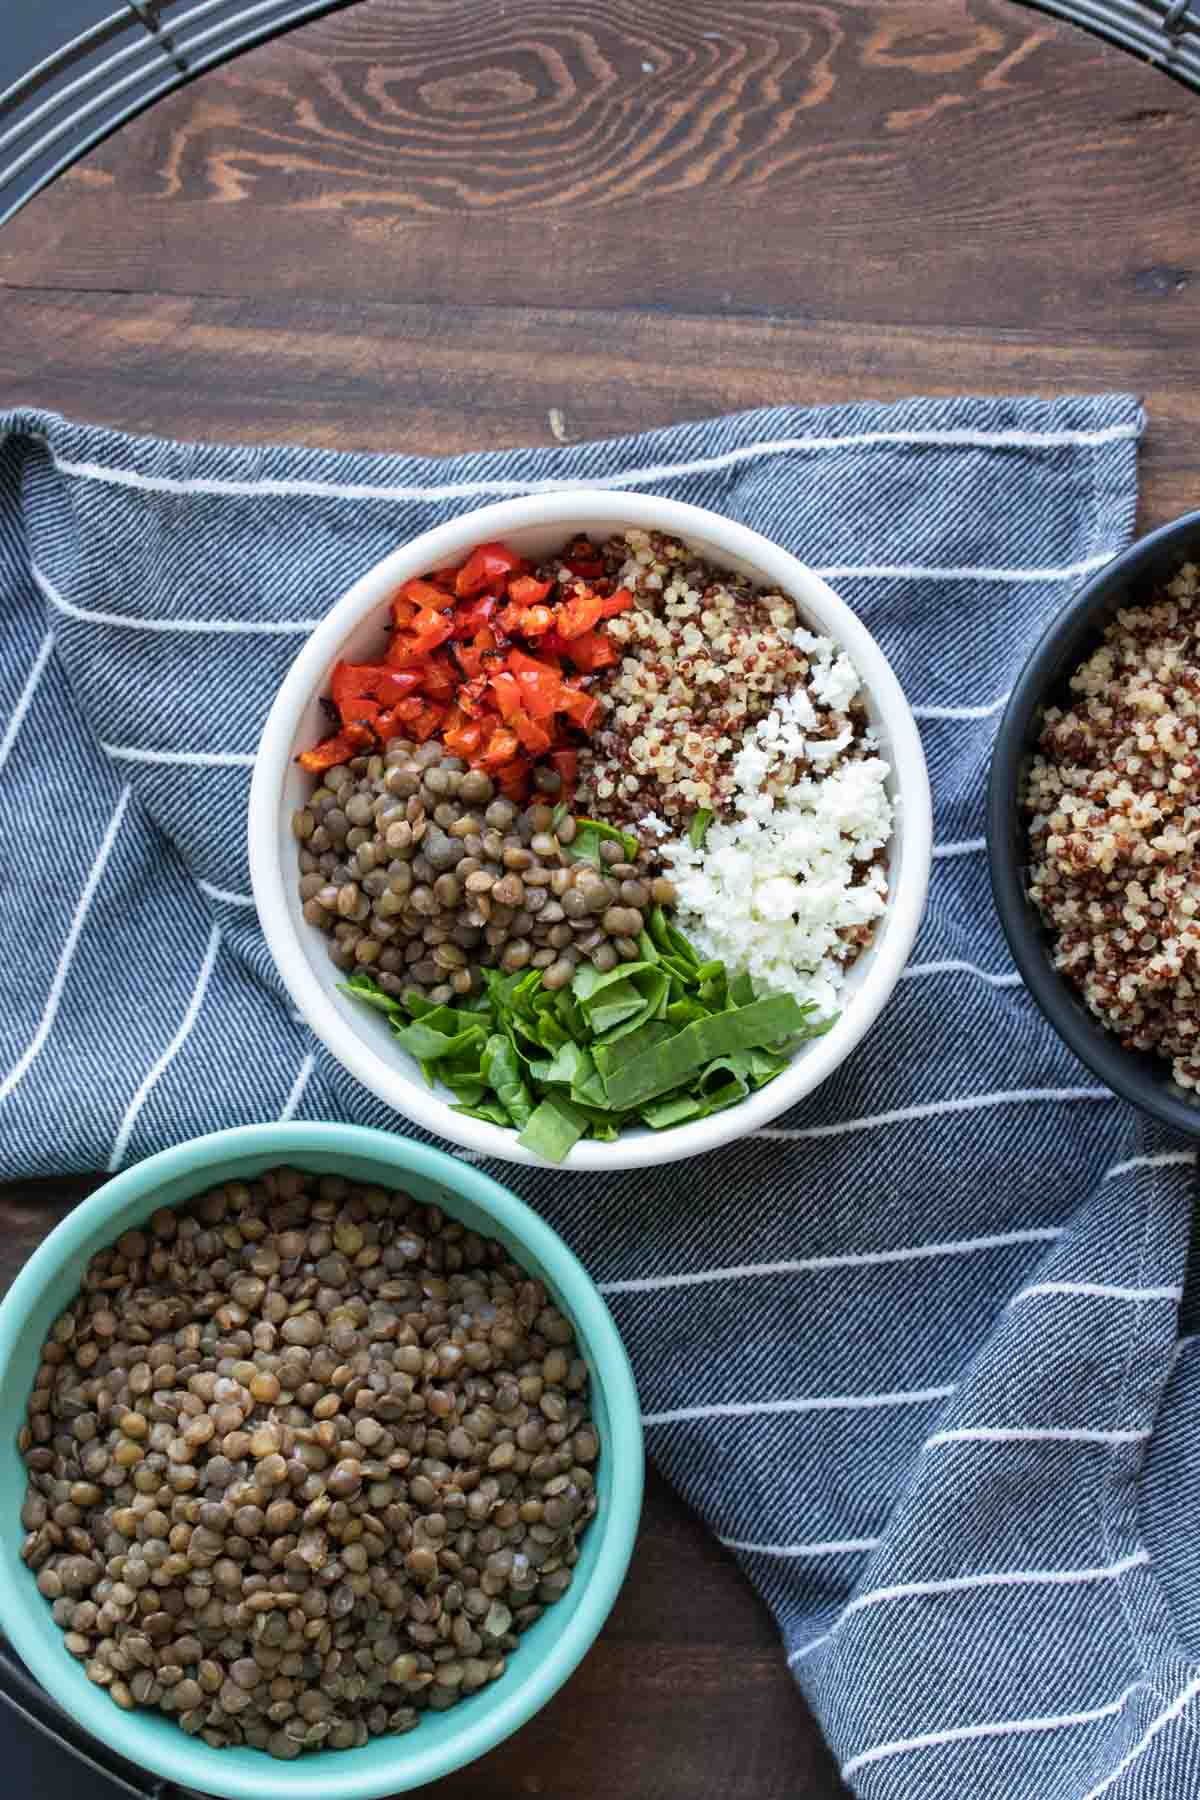 Bowls of lentil quinoa salad ingredients on a blue striped towel